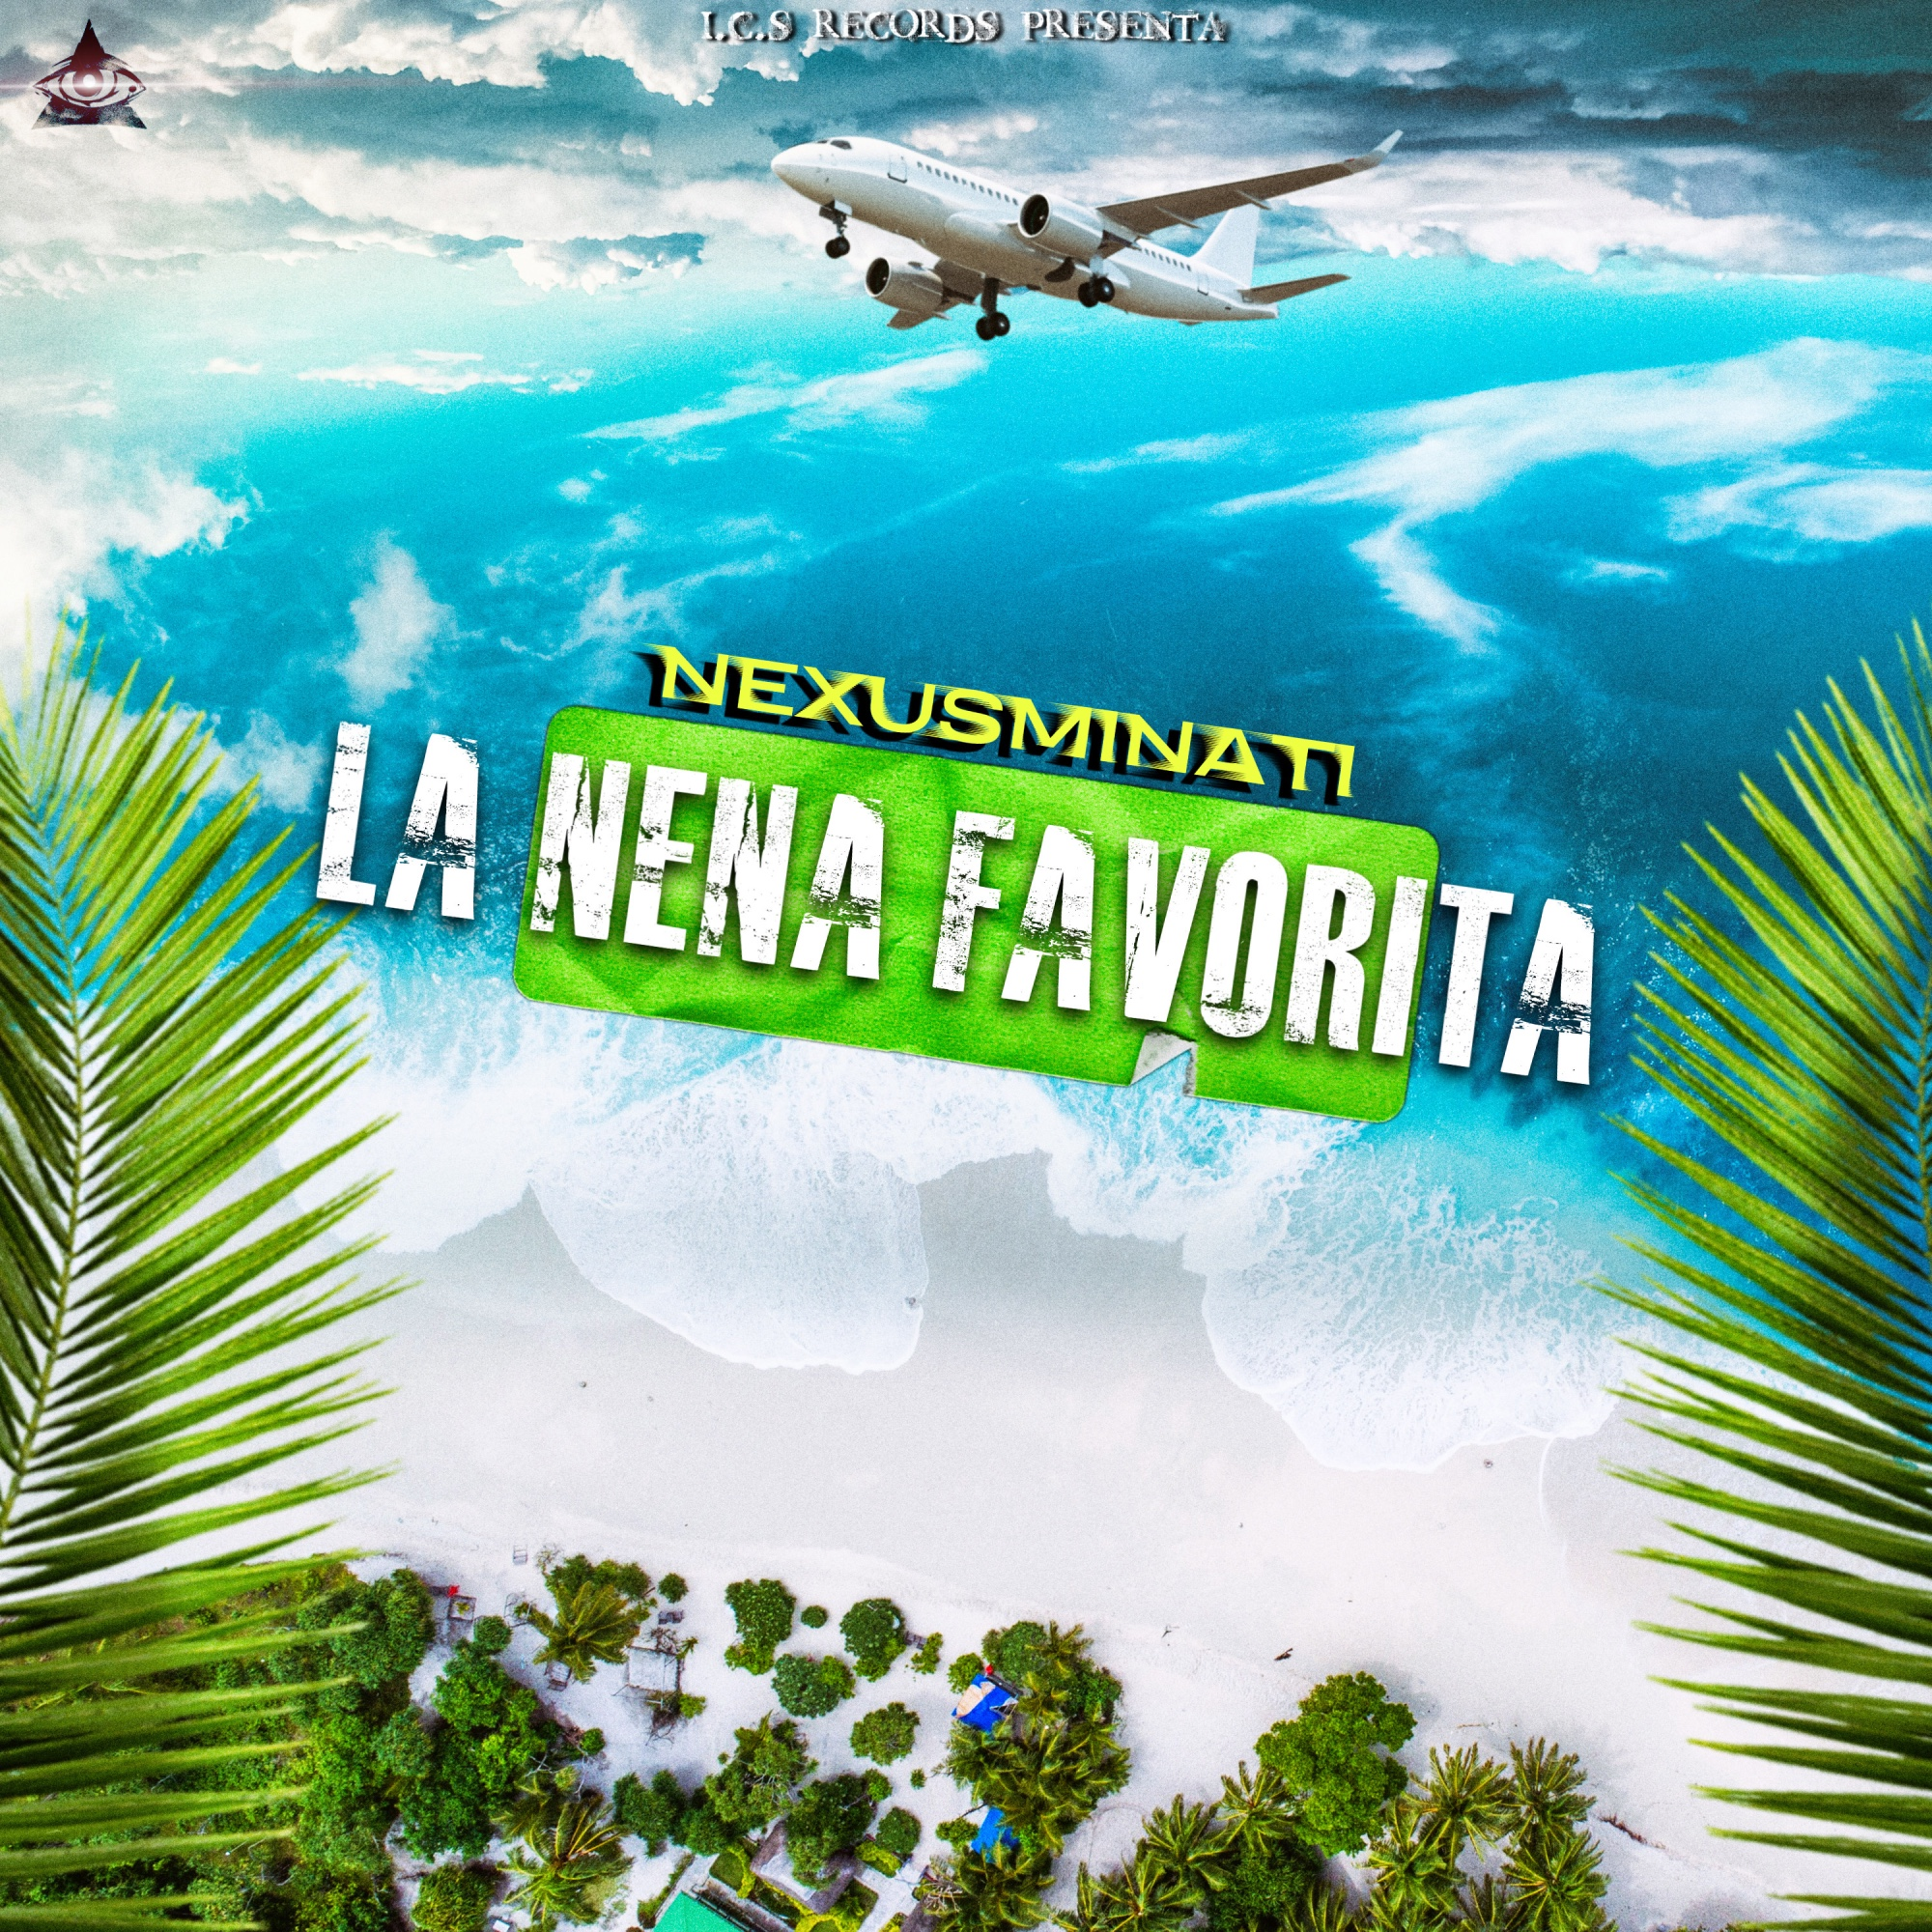 Captivating Listeners with Enriching Latin Pop Fusions: Eclectic Artist NexusminaTi Set to Enthrall with New Single